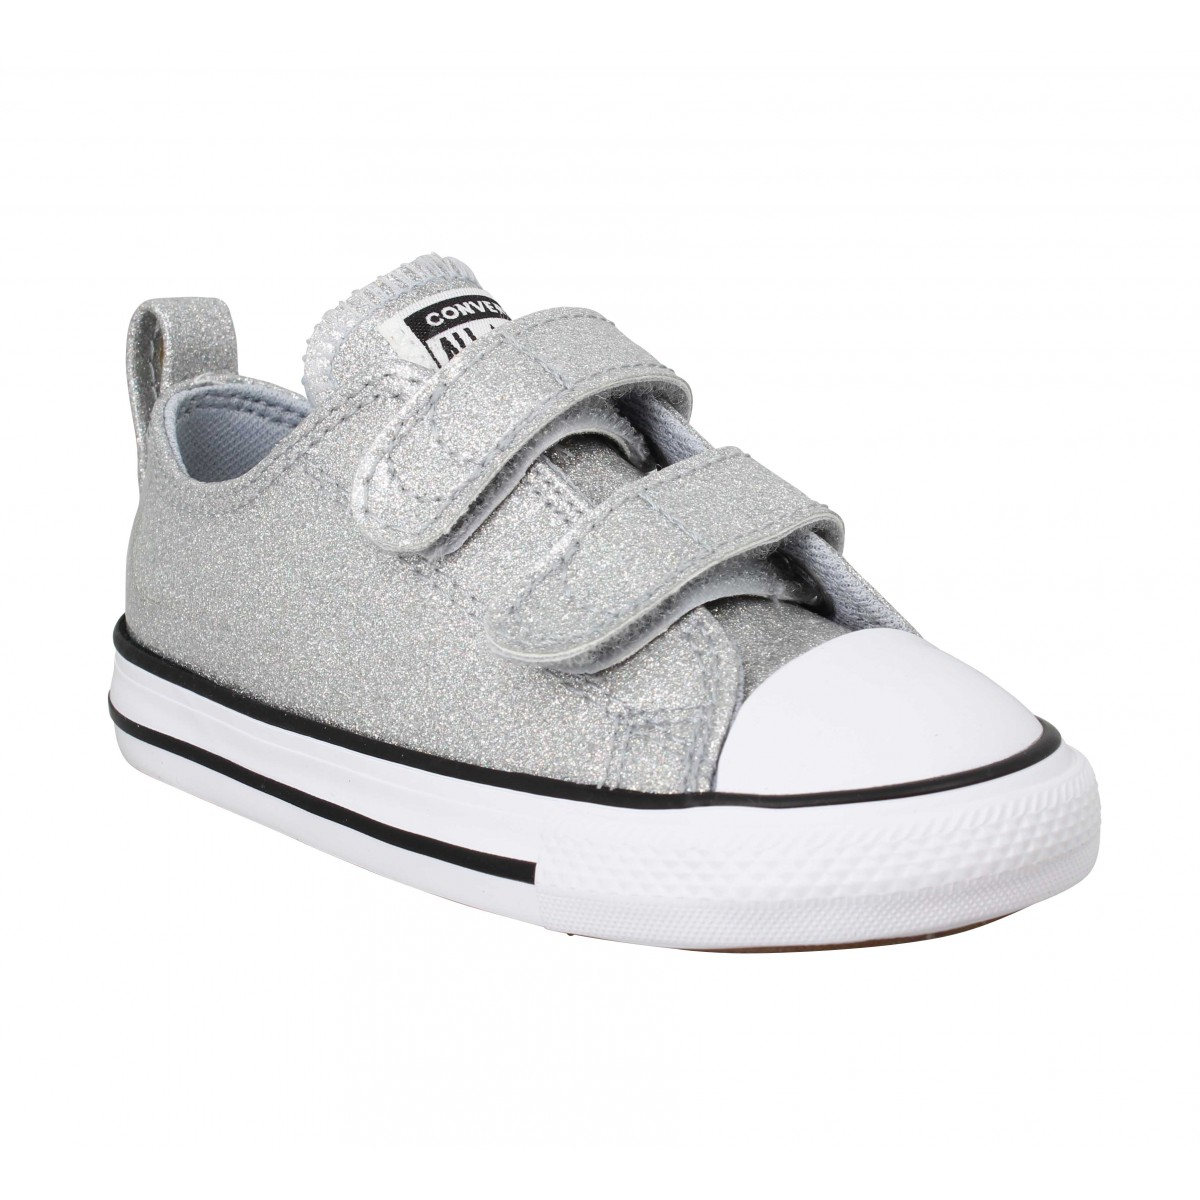 Baskets CONVERSE Chuck Taylor All Star 2V simili Enfant Argent